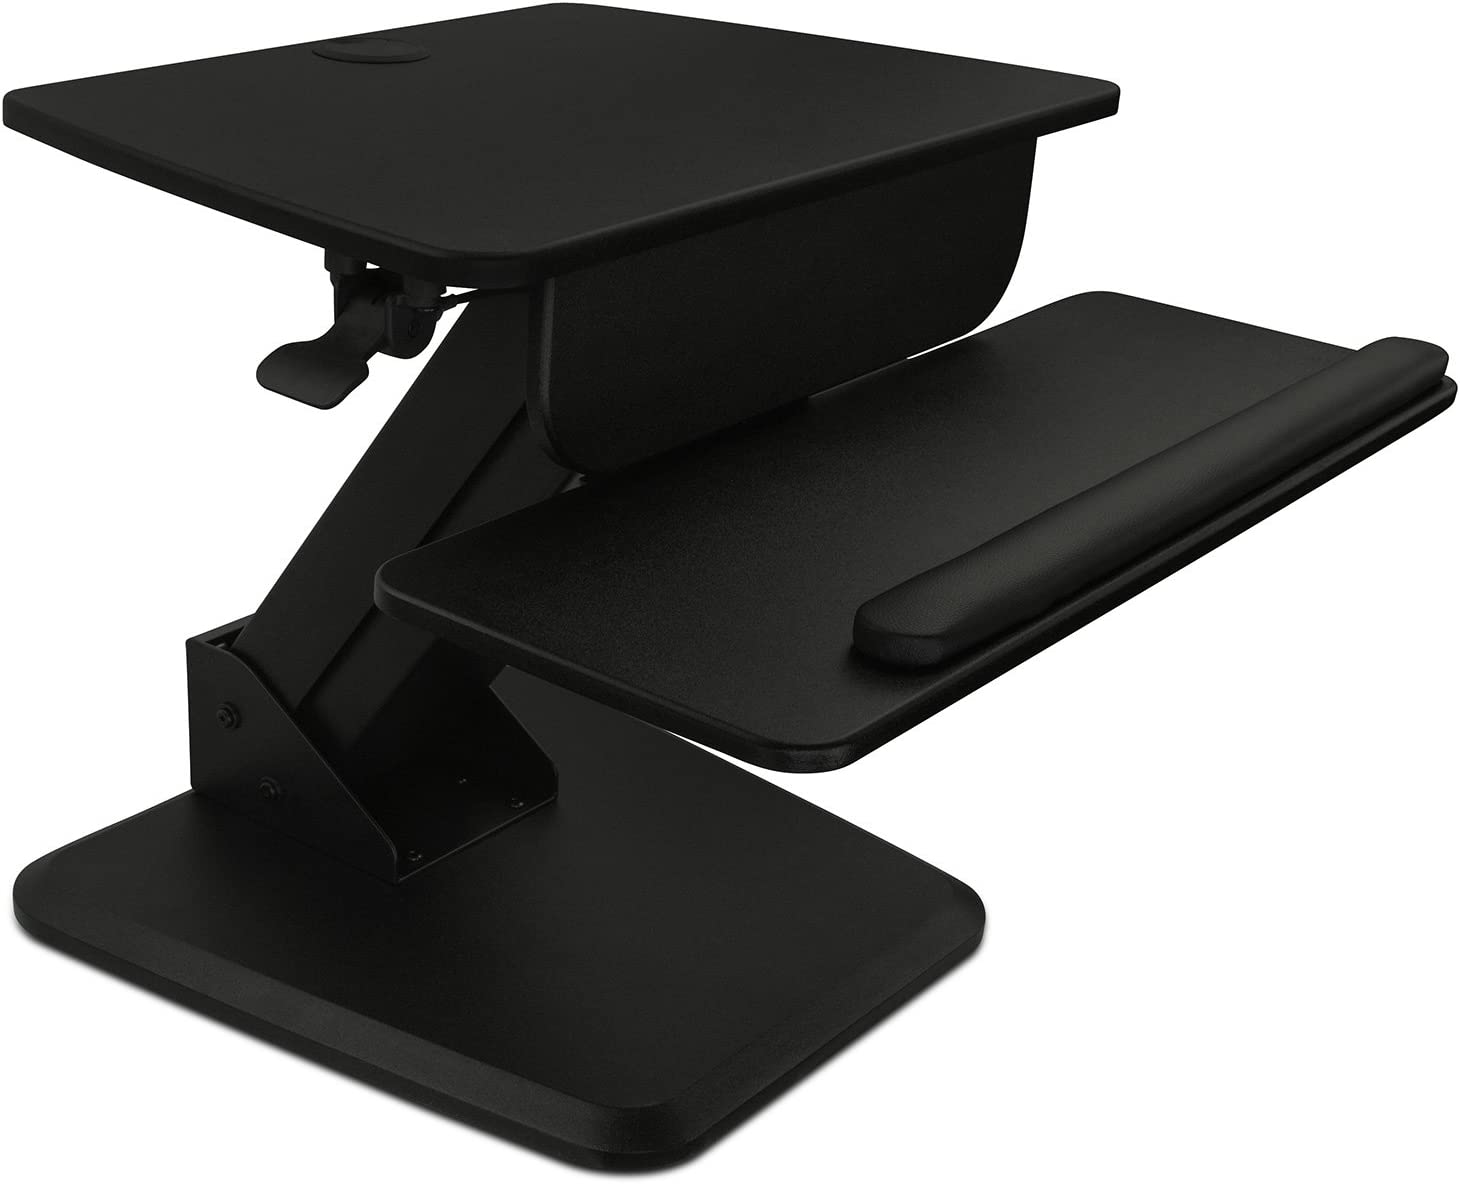 Mount-It! Sit-Stand Converter for Laptop, Desktop, Monitor, Ergonomic Free Standing Desk, Black (MI-7910)